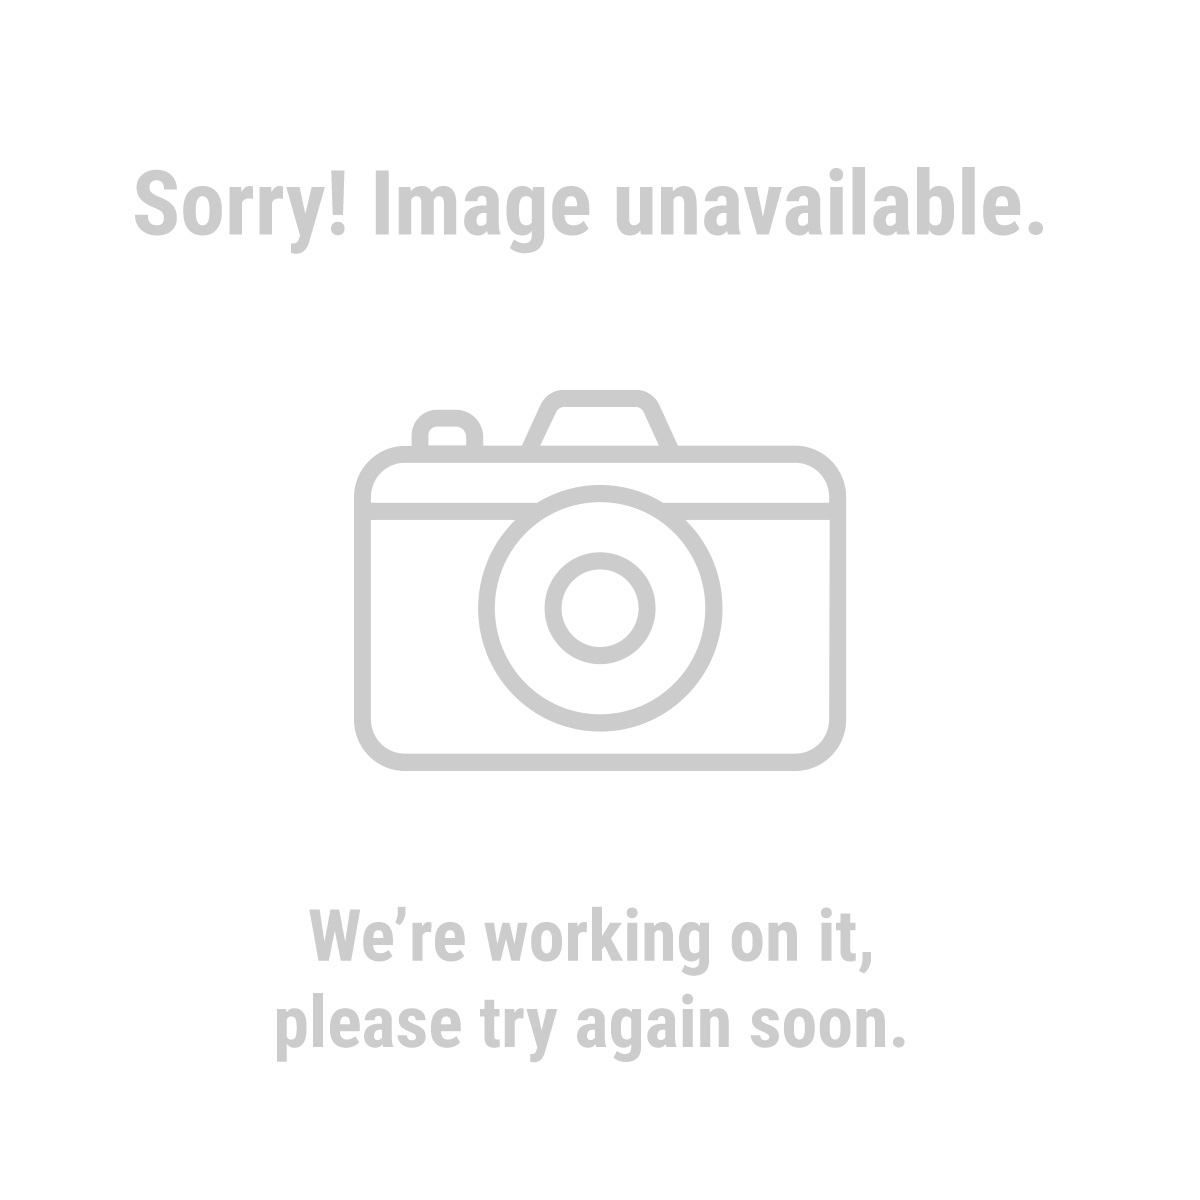 Warrior 1800 13 Piece Titanium Nitride Coated Drill Bits